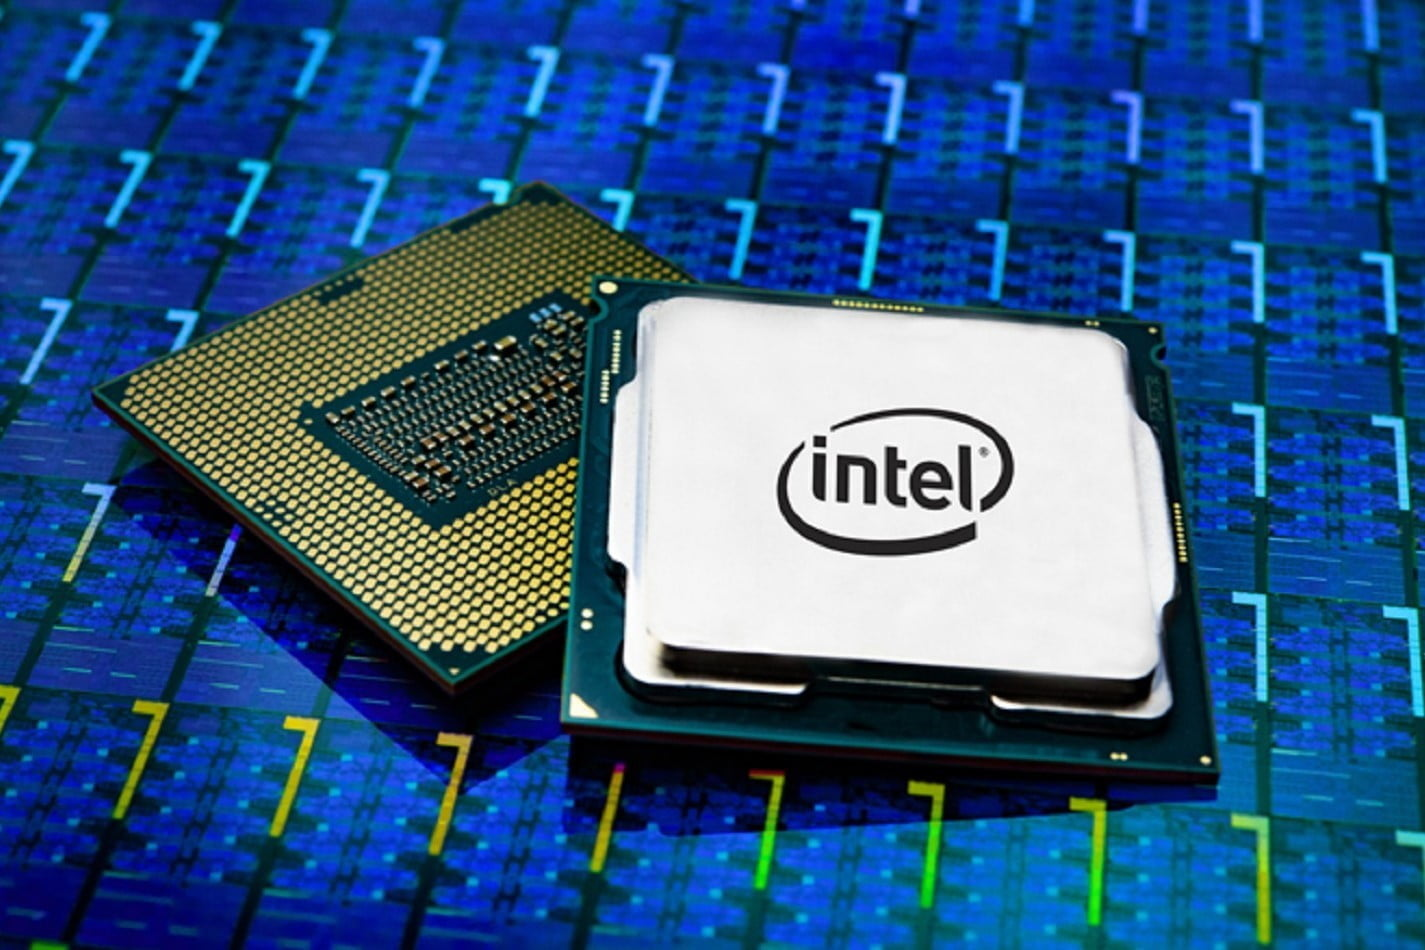 Intel's CPU shortage is no longer affecting Microsoft's sales